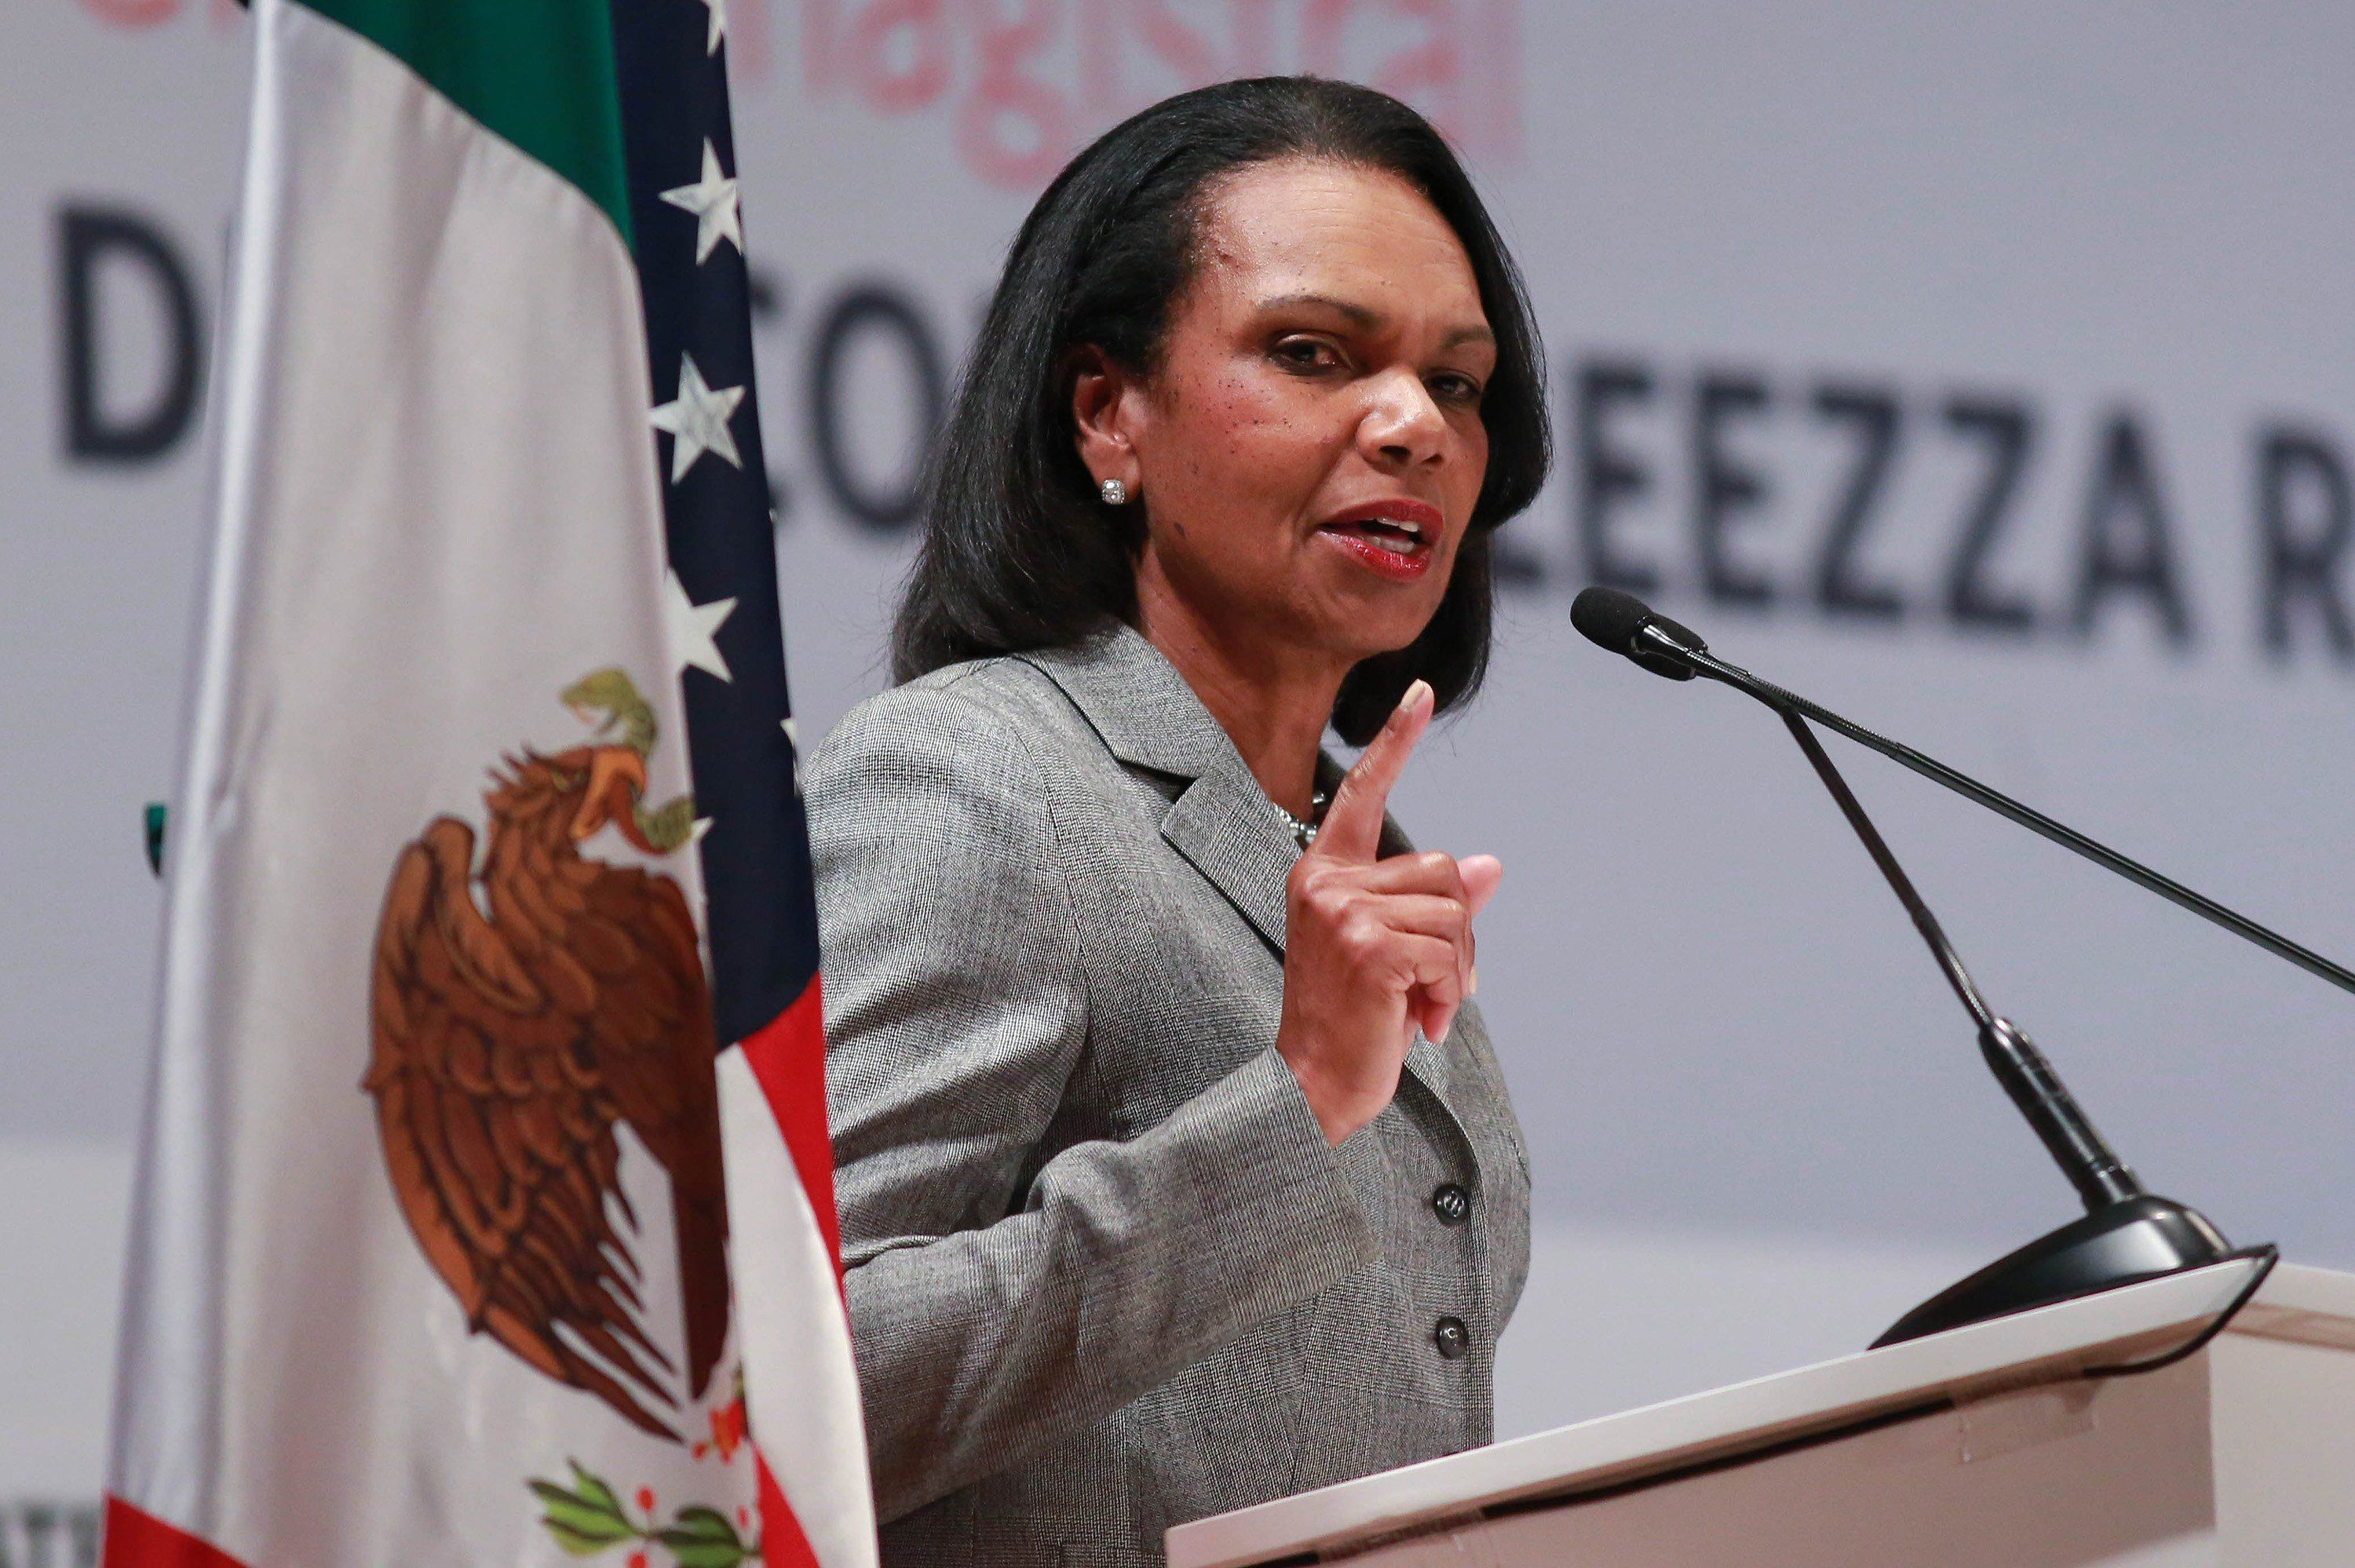 MEXICO CITY, MEXICO -  NOVEMBER 28: Former United States Secretary of State, Condoleezza Rice makes a speech during a the 'Democracy and Liberty' conference at UVM University in Mexico City, Mexico on November 28, 2017. (Photo by Daniel Cardenas/Anadolu Agency/Getty Images)